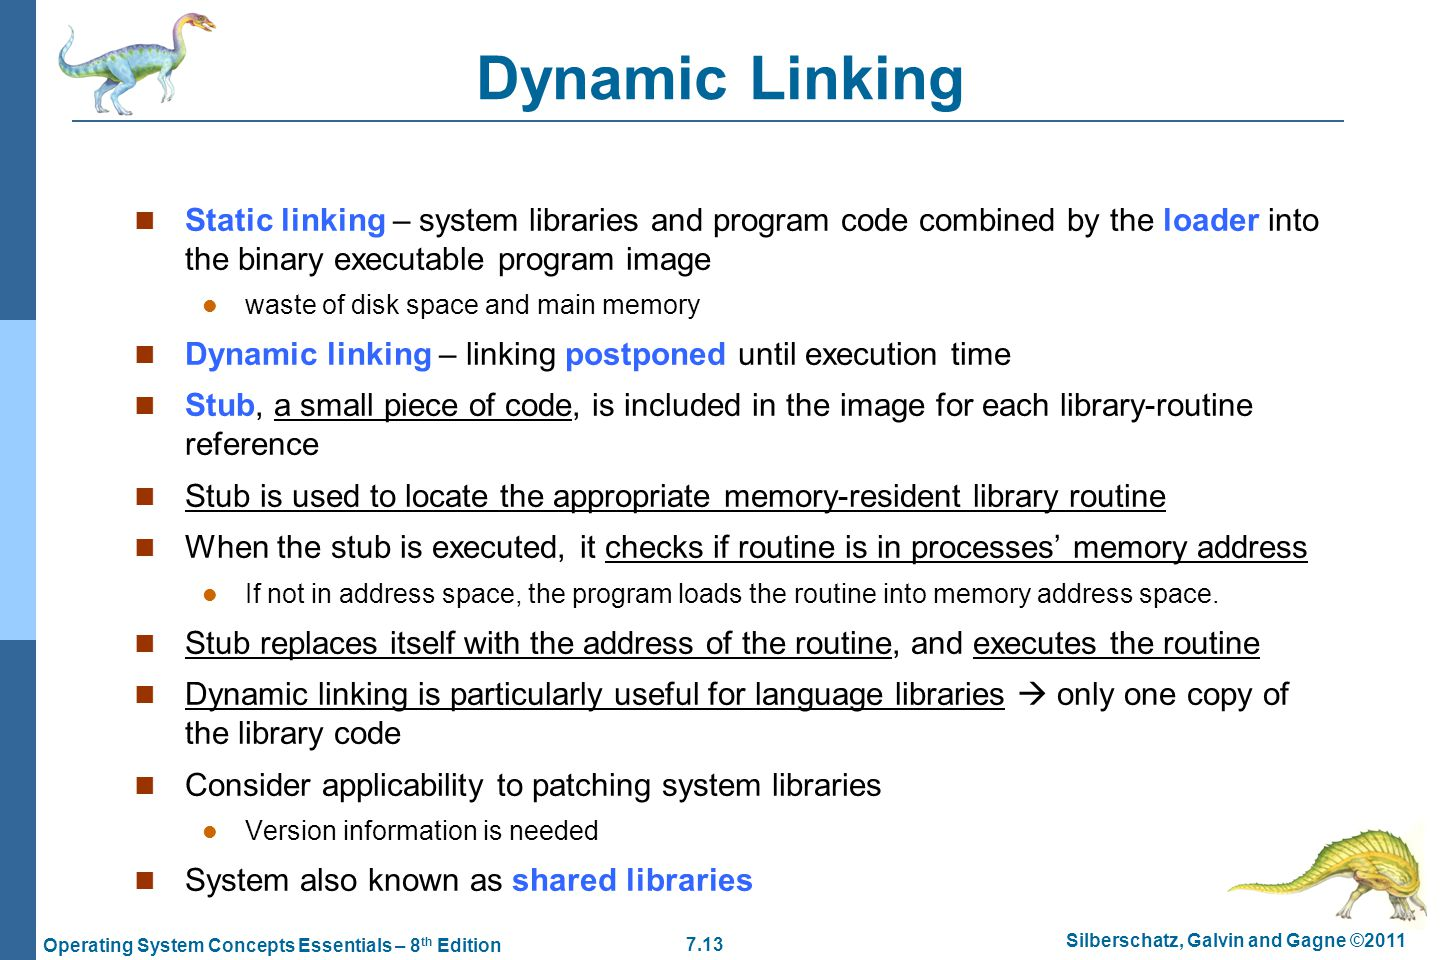 7.13 Silberschatz, Galvin and Gagne ©2011 Operating System Concepts Essentials – 8 th Edition Dynamic Linking Static linking – system libraries and program code combined by the loader into the binary executable program image waste of disk space and main memory Dynamic linking – linking postponed until execution time Stub, a small piece of code, is included in the image for each library-routine reference Stub is used to locate the appropriate memory-resident library routine When the stub is executed, it checks if routine is in processes' memory address If not in address space, the program loads the routine into memory address space.